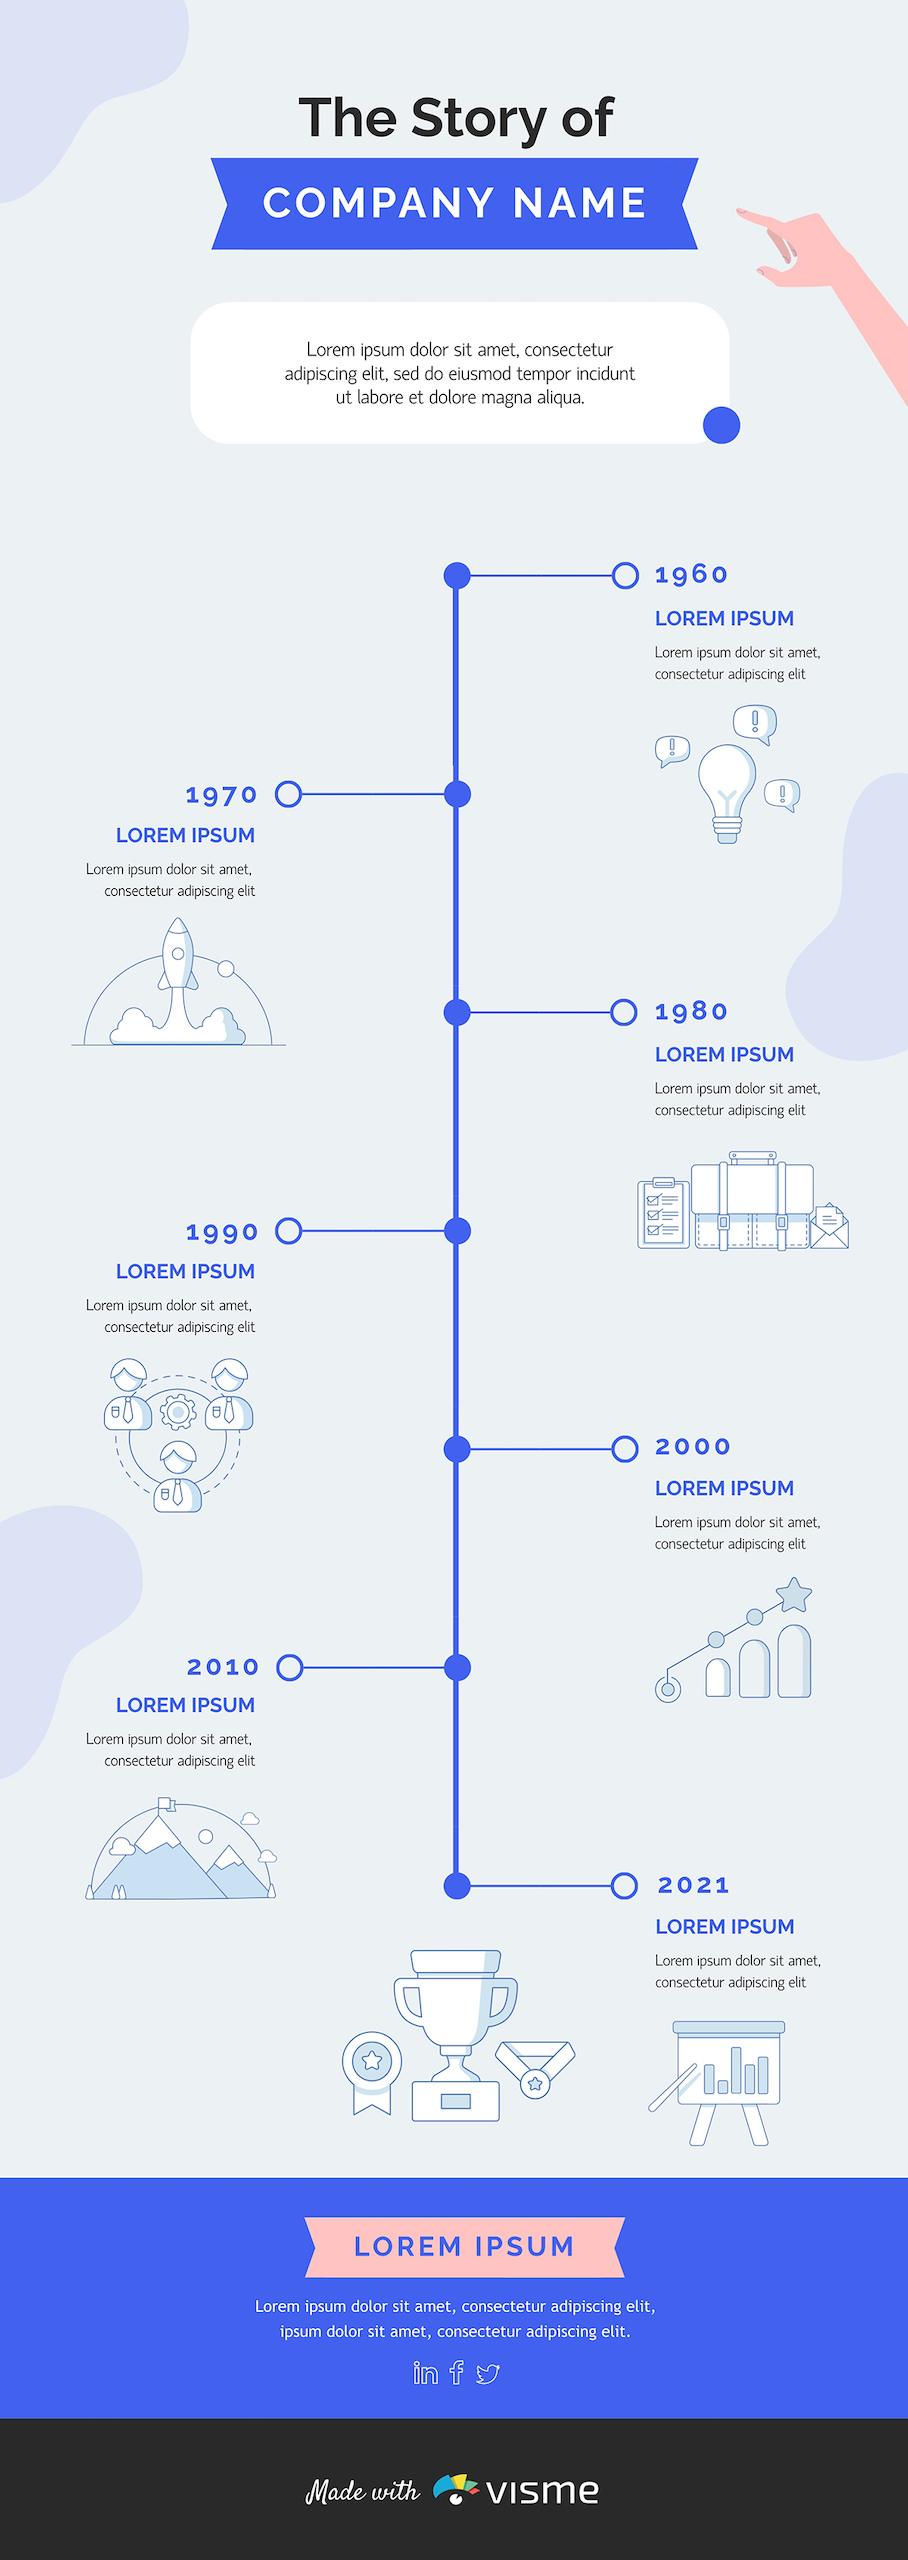 A company history timeline template available to customize in Visme.